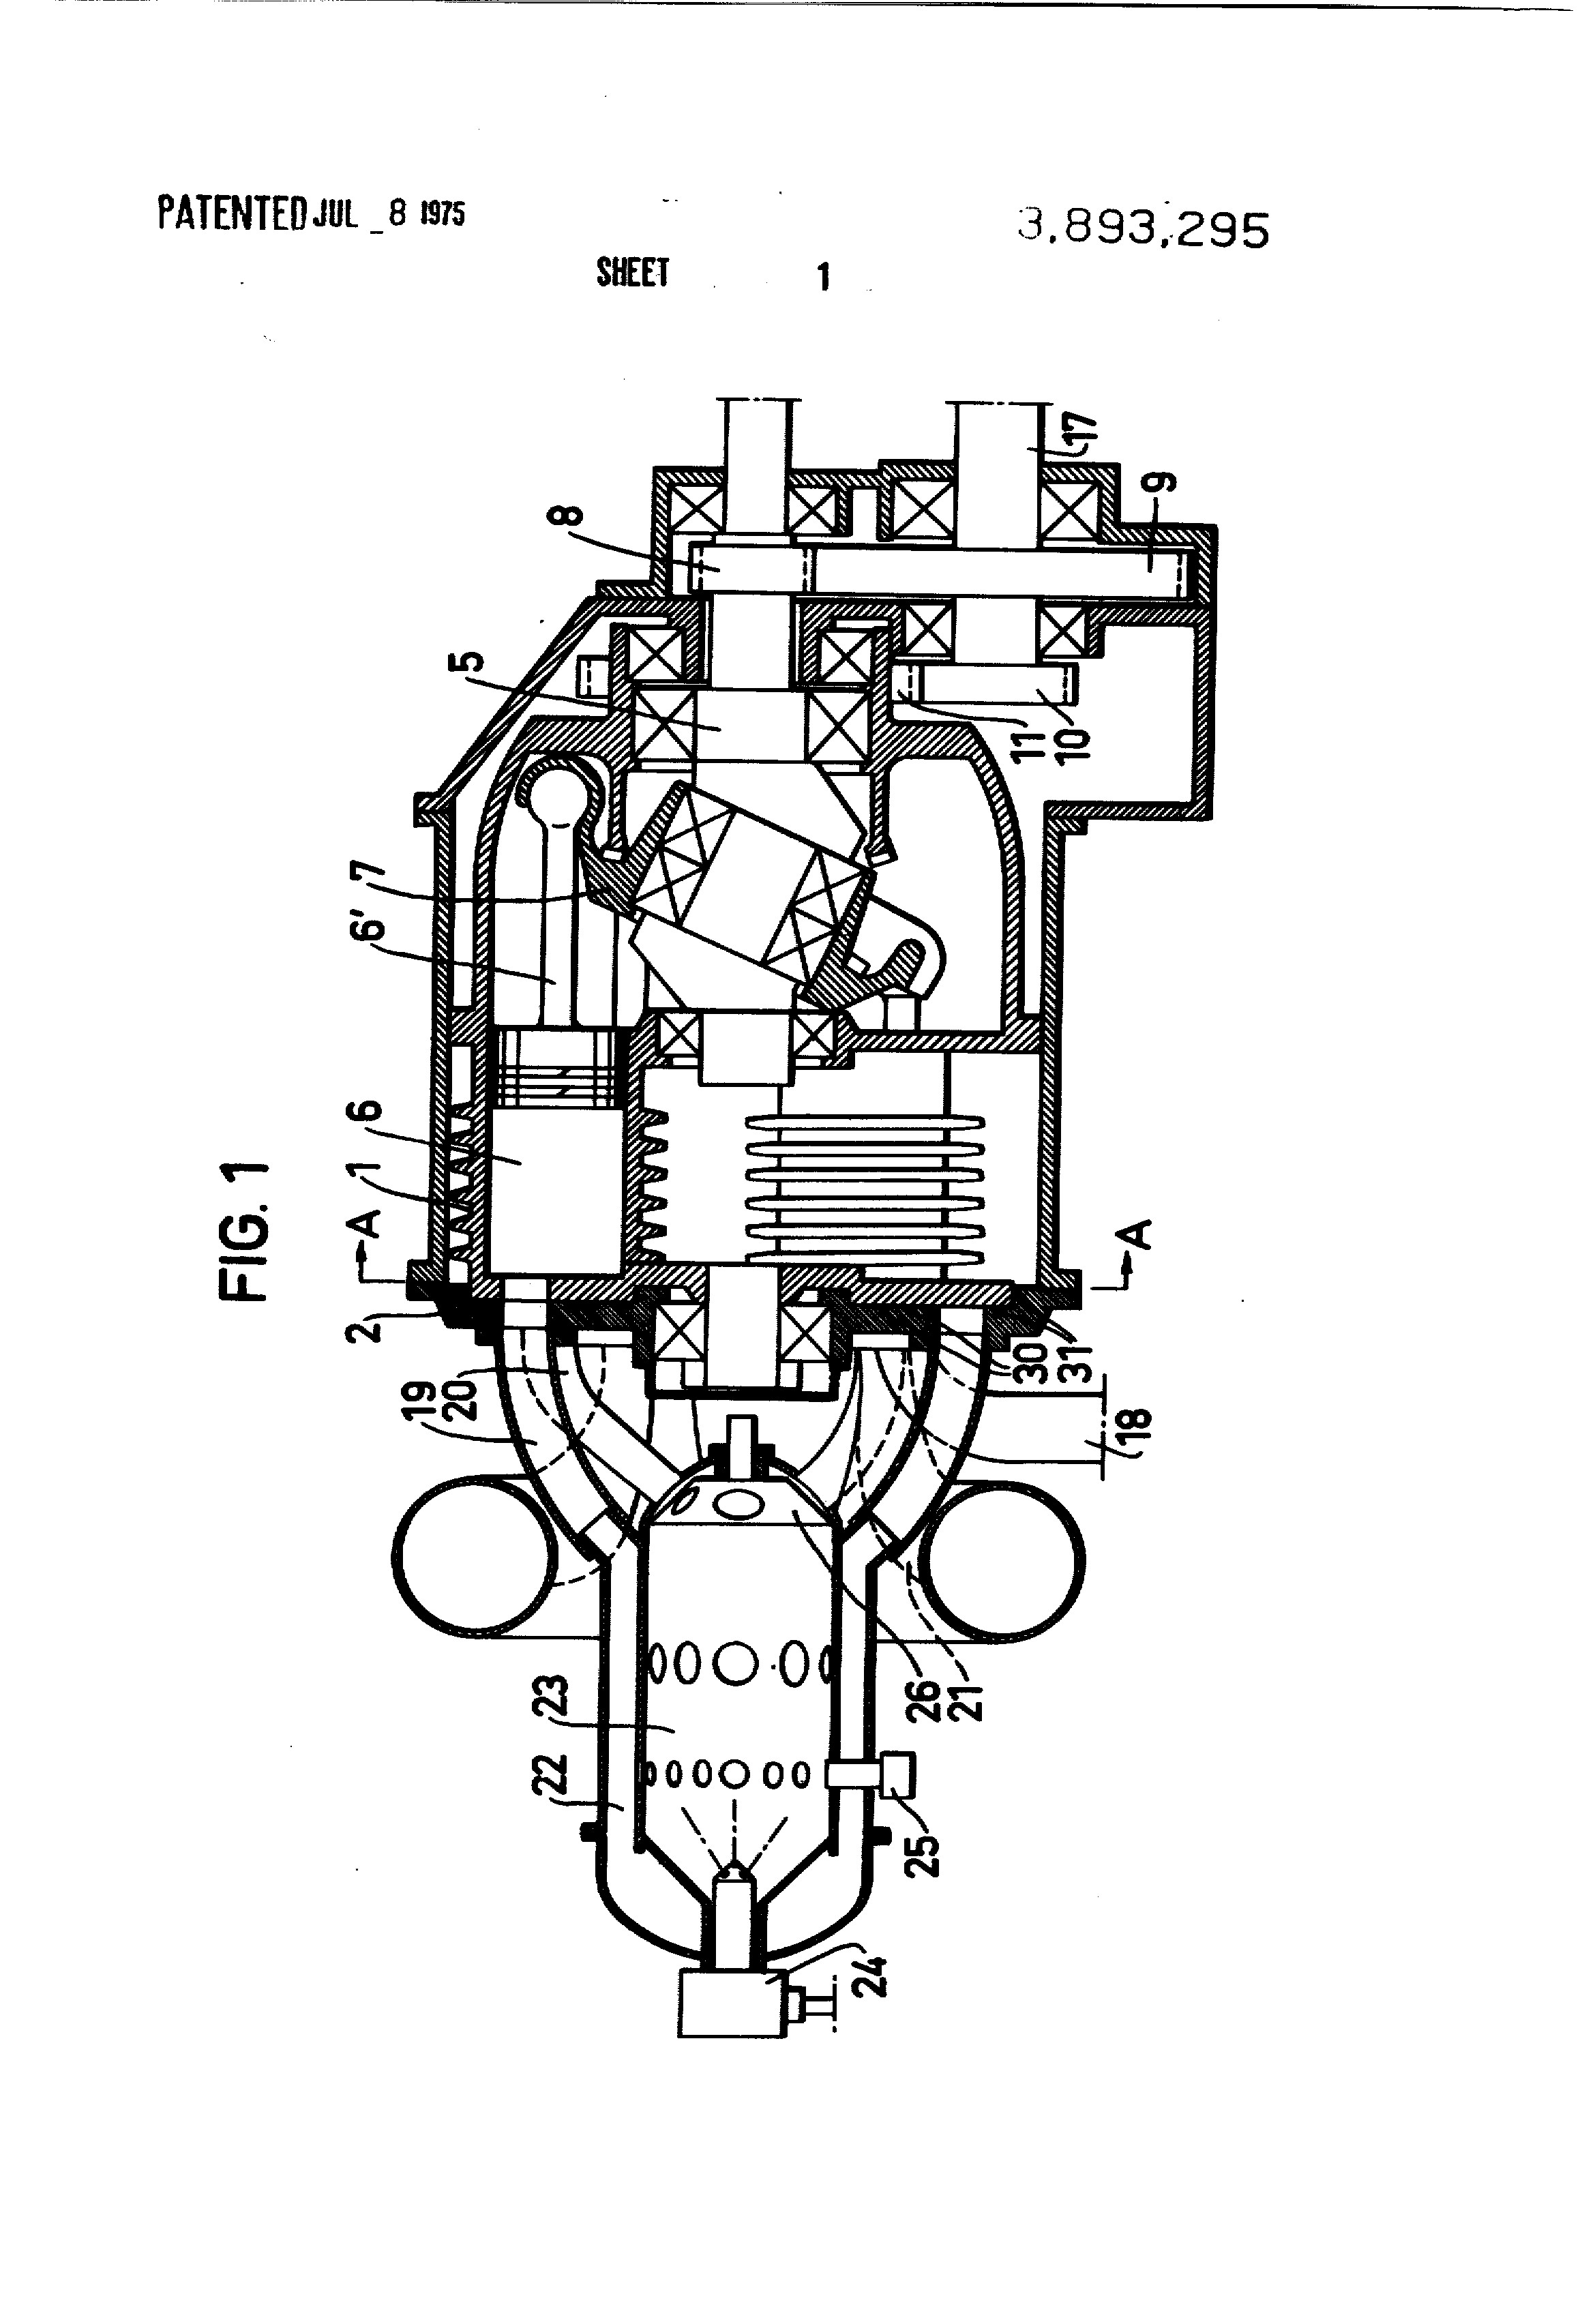 Car Engine Piston Diagram Patent Us External Bustion Swash Plate Engine Employing Of Car Engine Piston Diagram